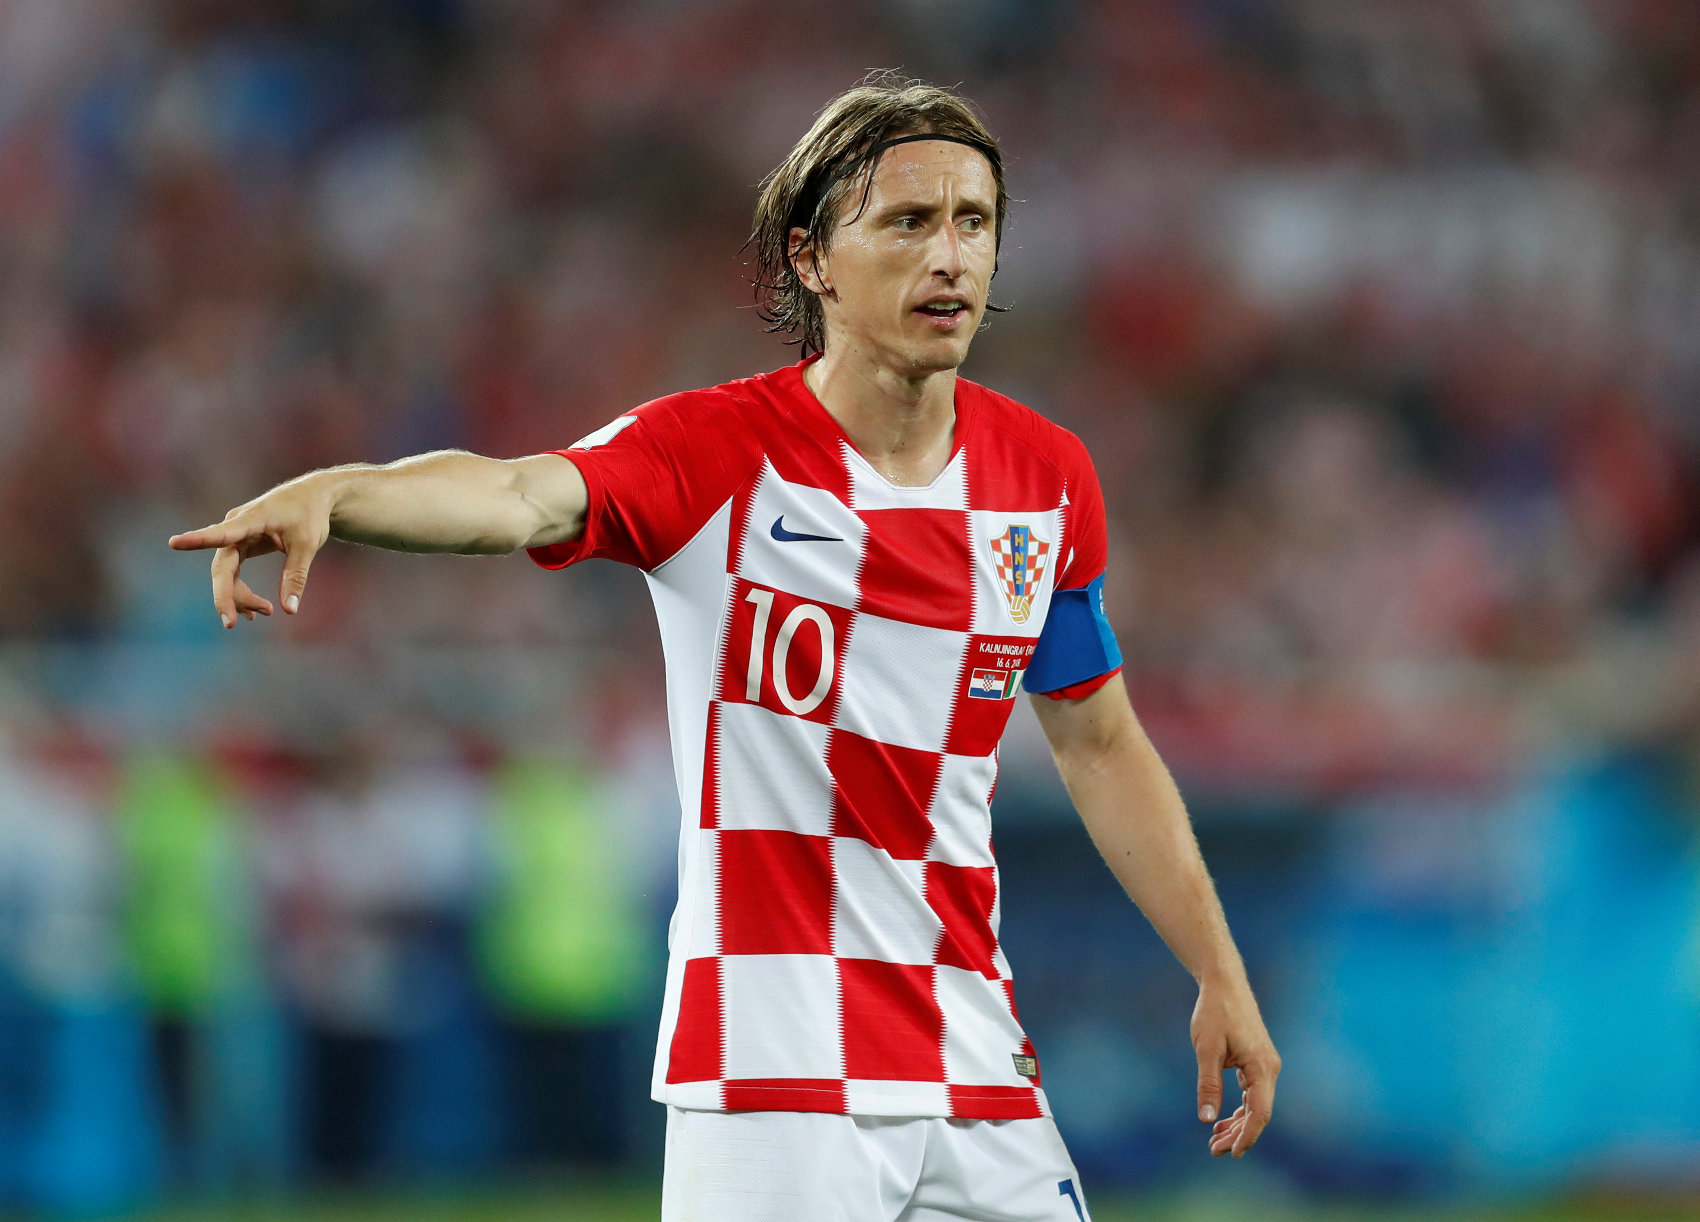 Soccer Football - World Cup - Group D - Croatia vs Nigeria - Kaliningrad Stadium, Kaliningrad, Russia - June 16, 2018   Croatia's Luka Modric gestures           REUTERS/Matthew Childs